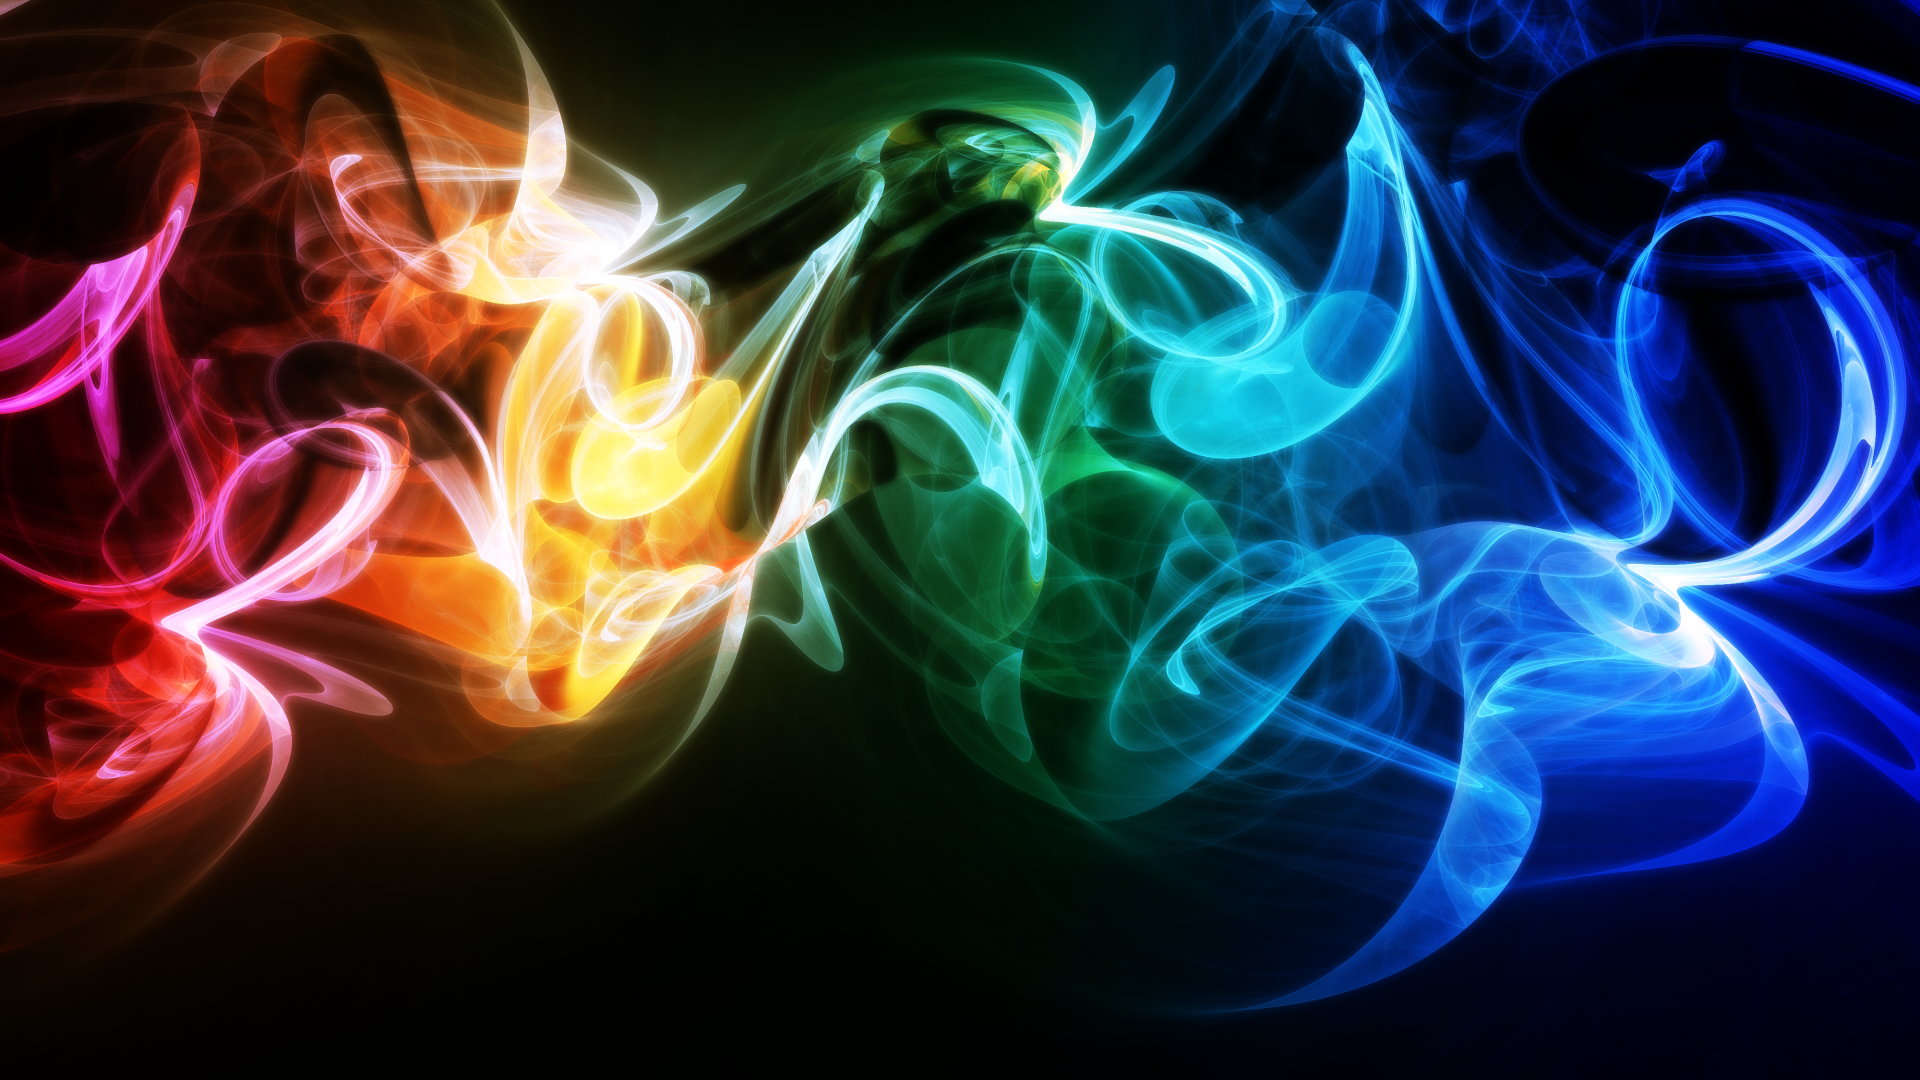 screen savers amber zoken generic abstract wallpaper love 1920x1080